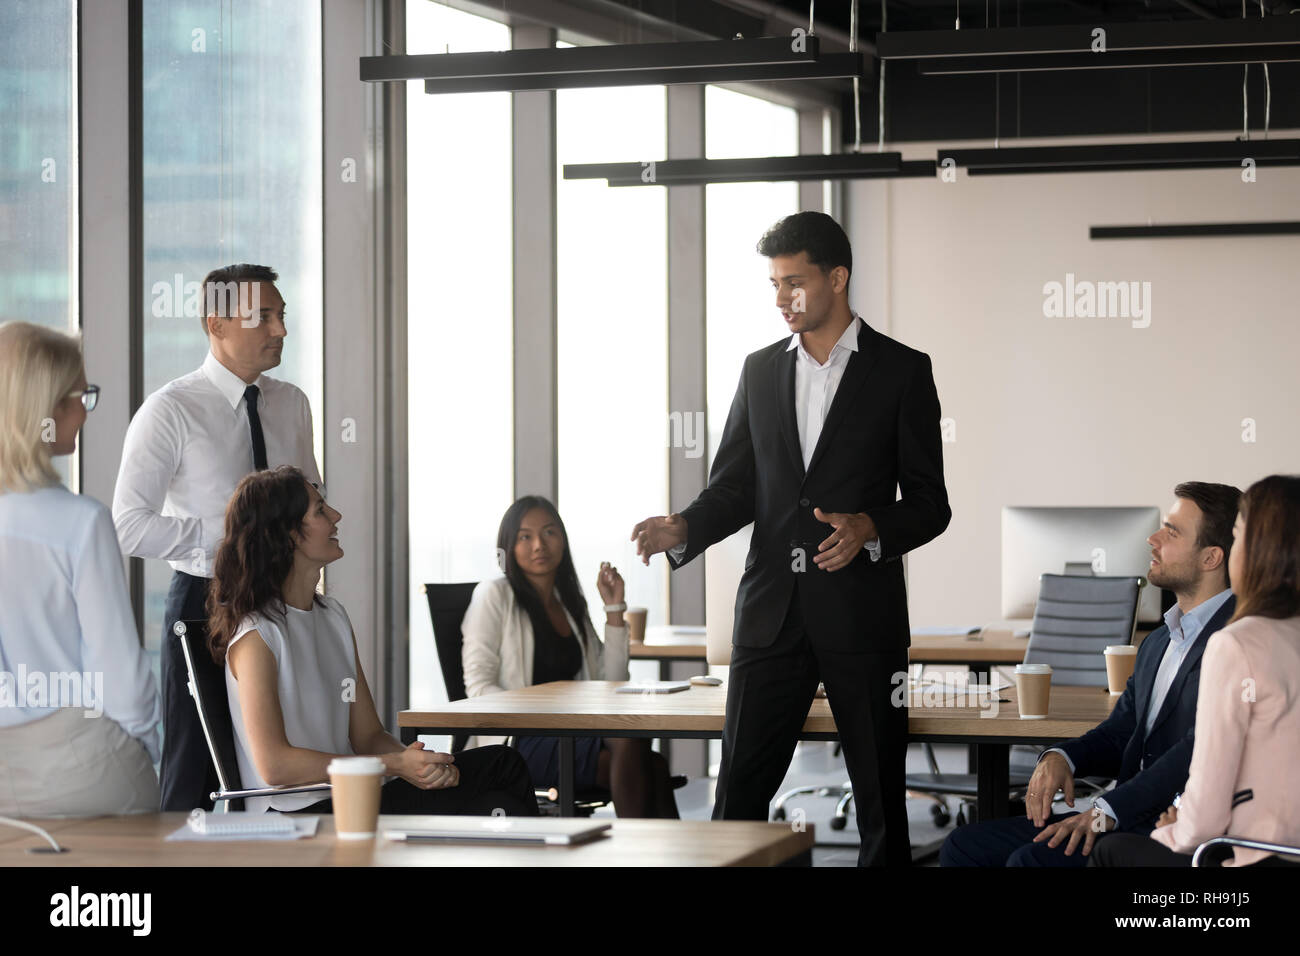 Arabic team leader talking to diverse business people at meeting - Stock Image